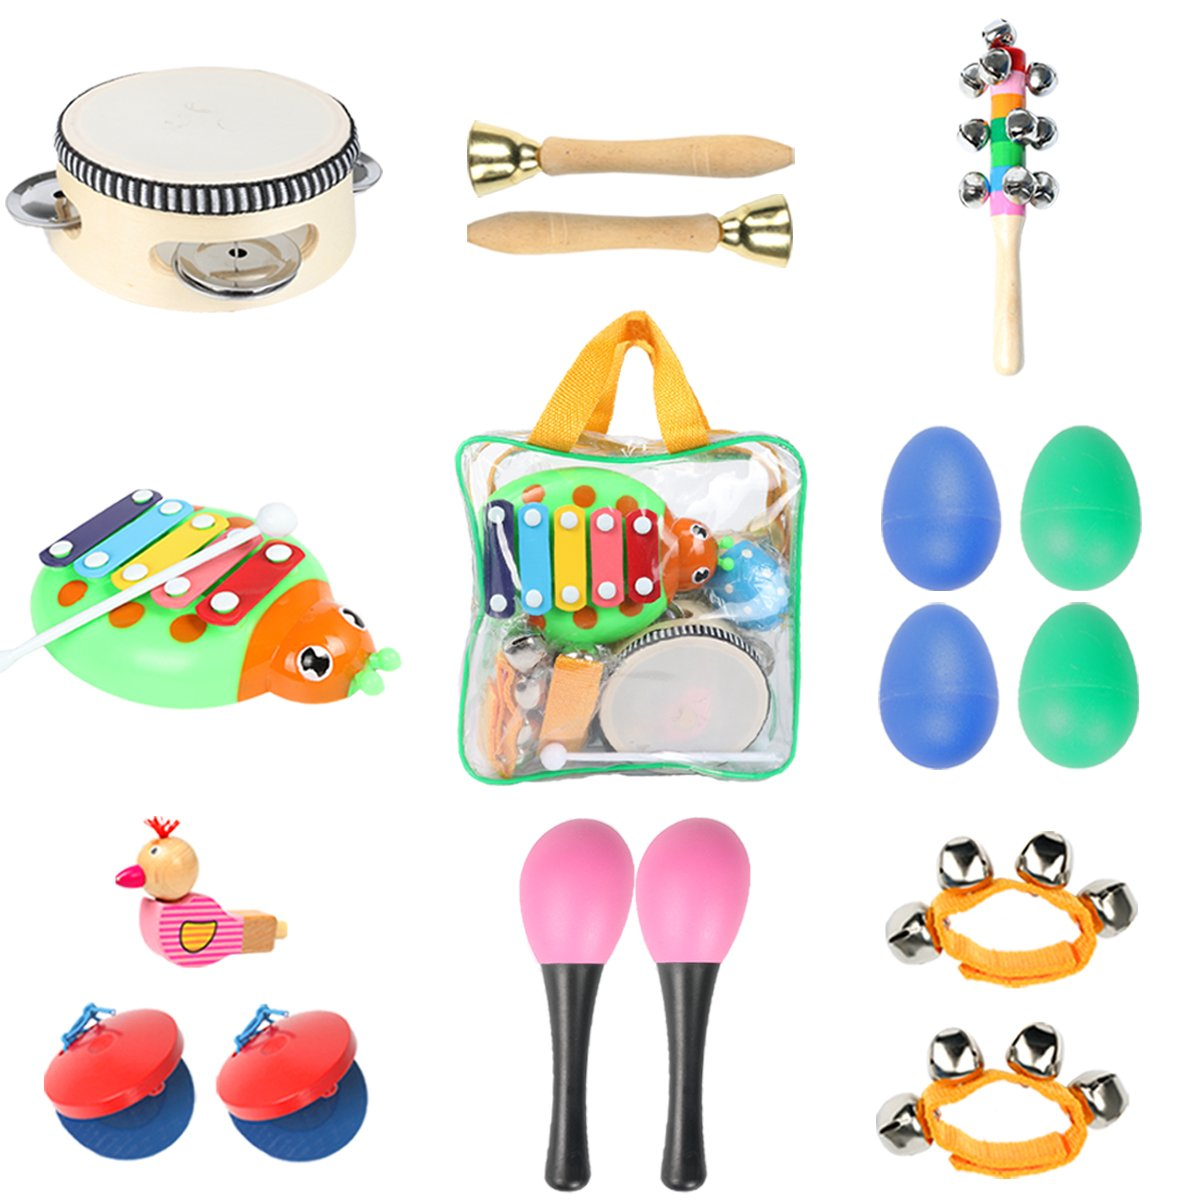 Toddler Toys Musical Instruments - Ehome 9 types 16pcs Percussion Toy Set for Kids